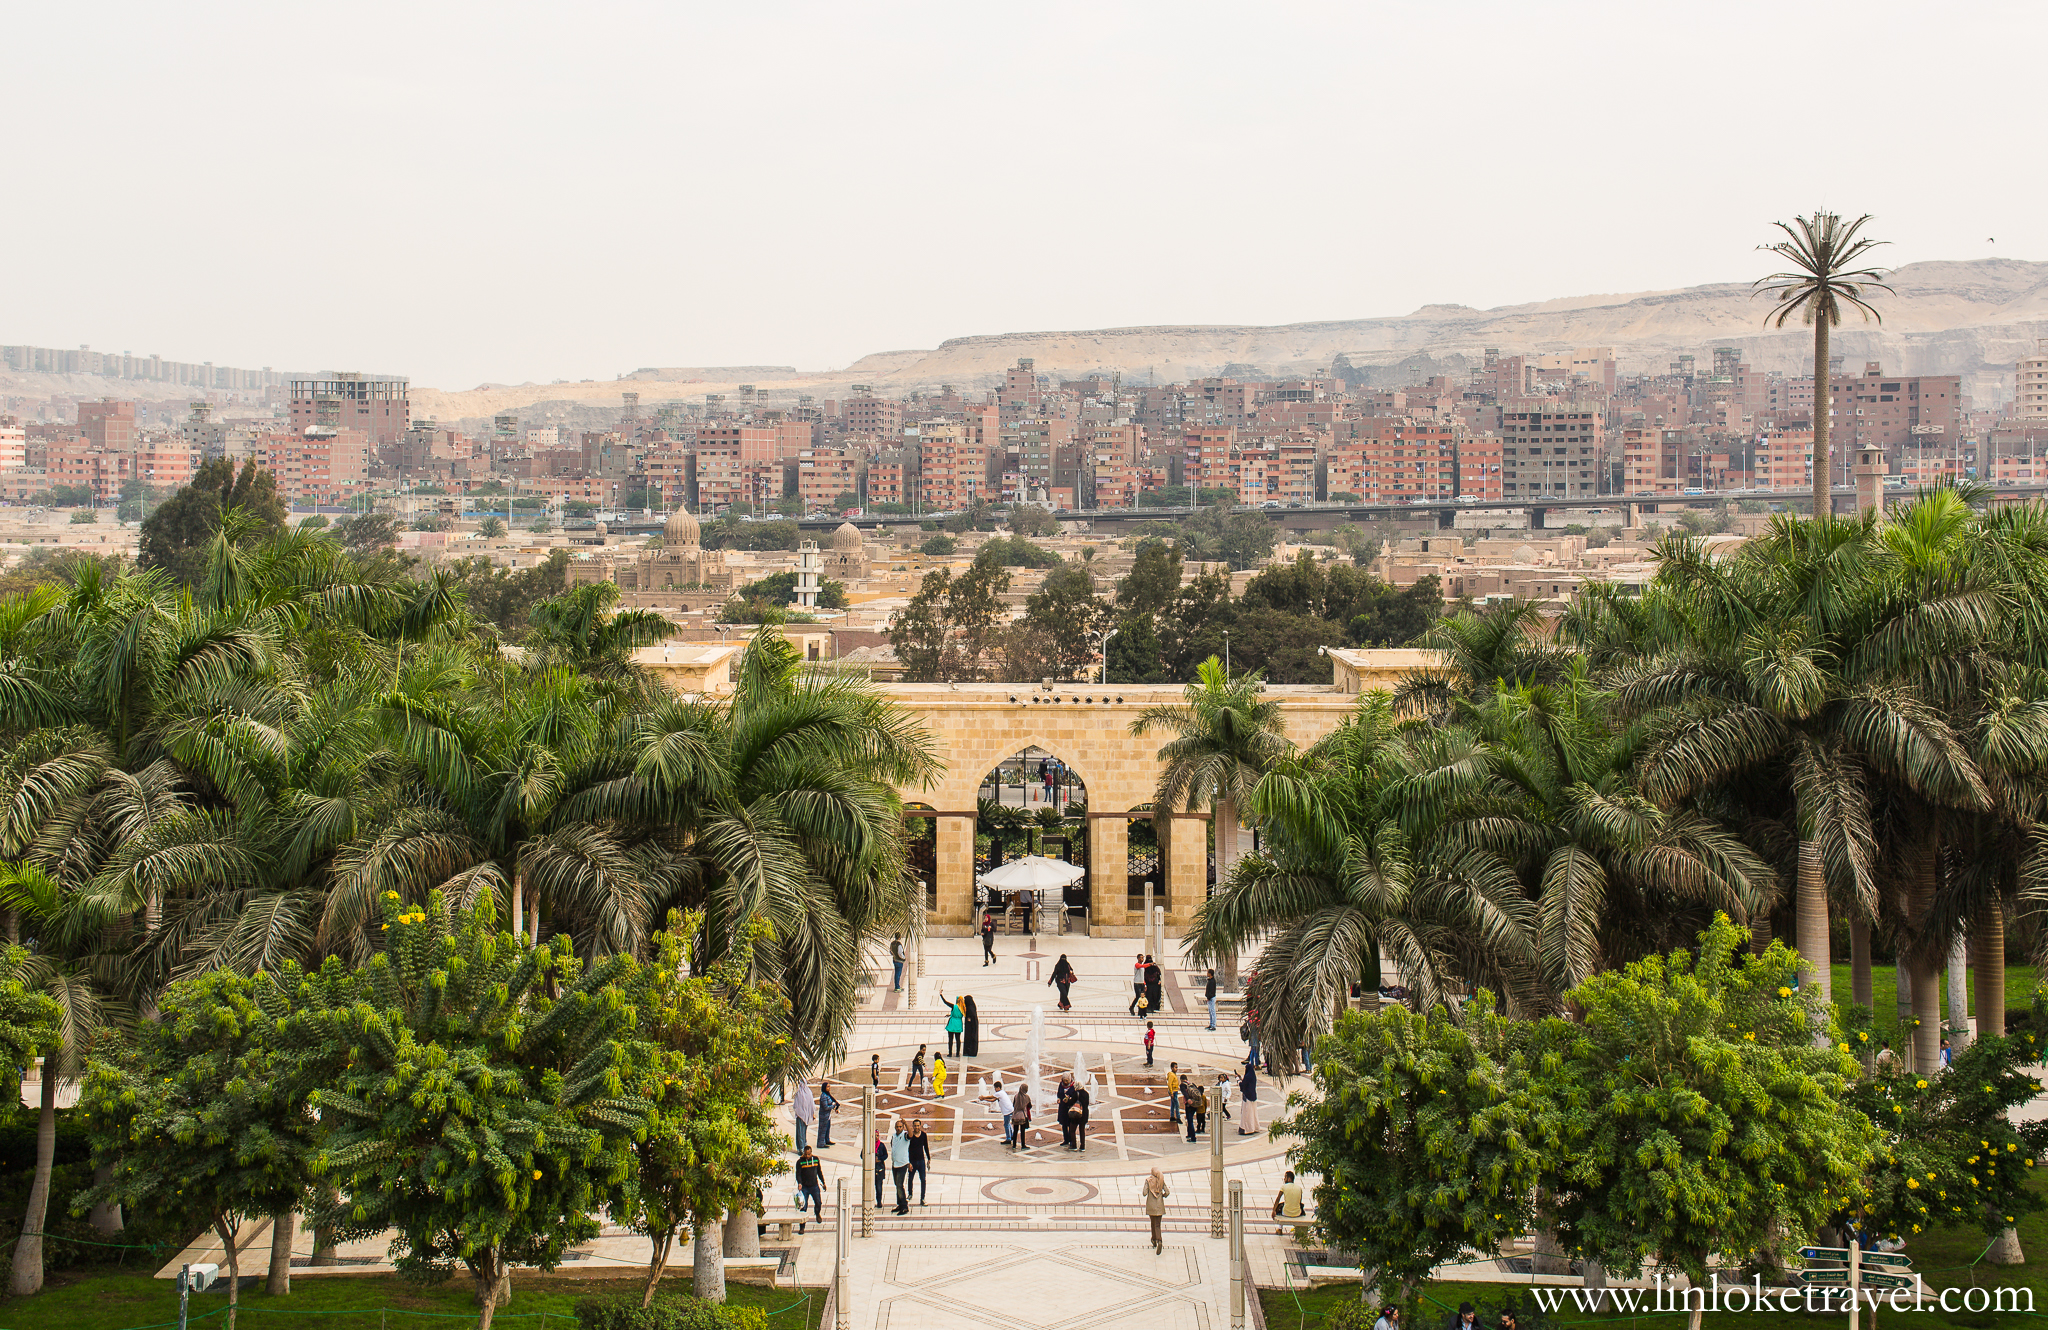 The entrance to Al-Azhar Park delineates a polarising landscape between the park and Cairo city.